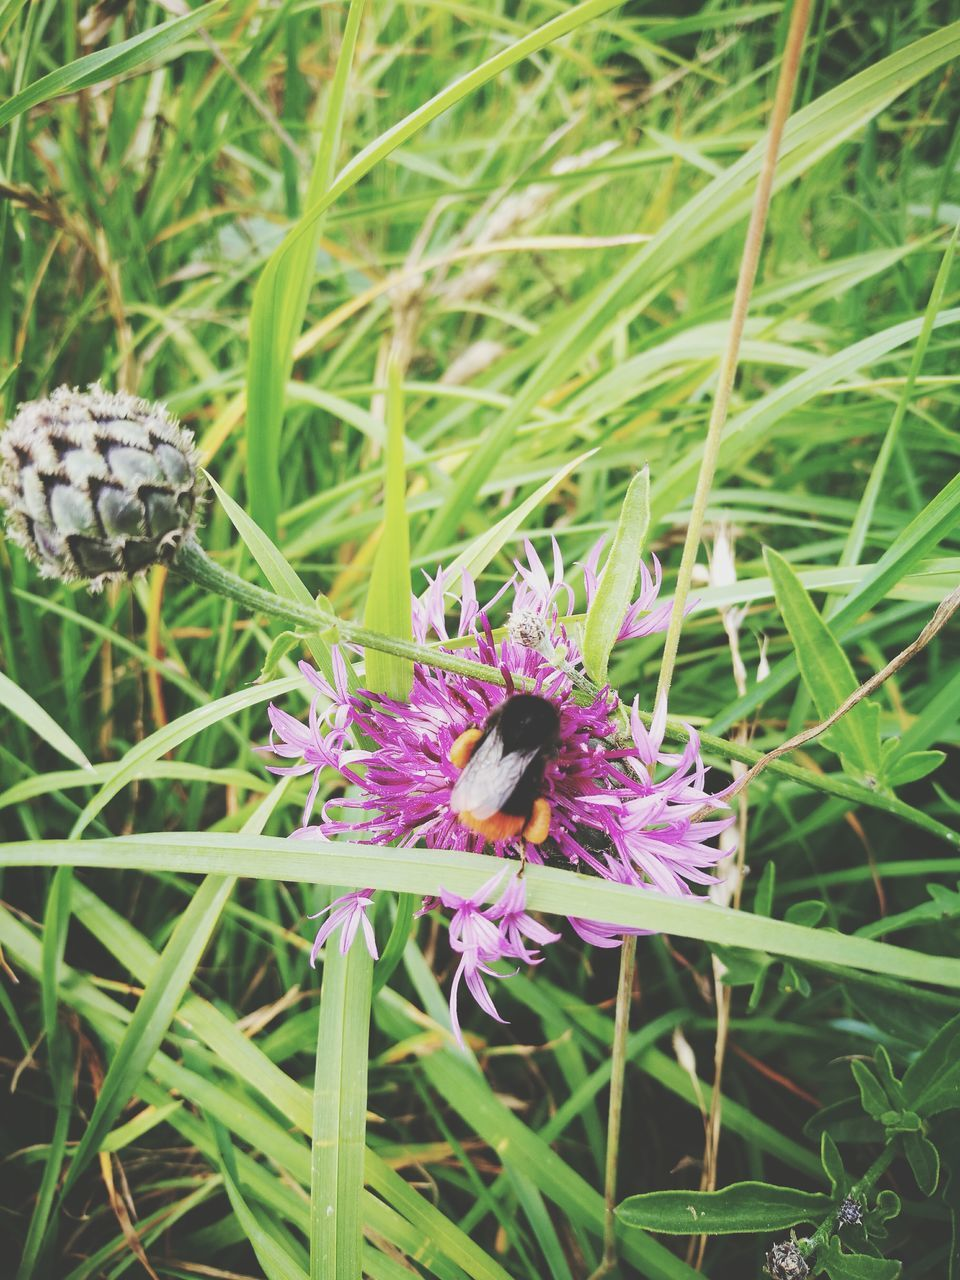 flower, nature, insect, animal themes, growth, one animal, plant, beauty in nature, animals in the wild, grass, purple, fragility, no people, day, outdoors, freshness, green color, petal, close-up, flower head, pollination